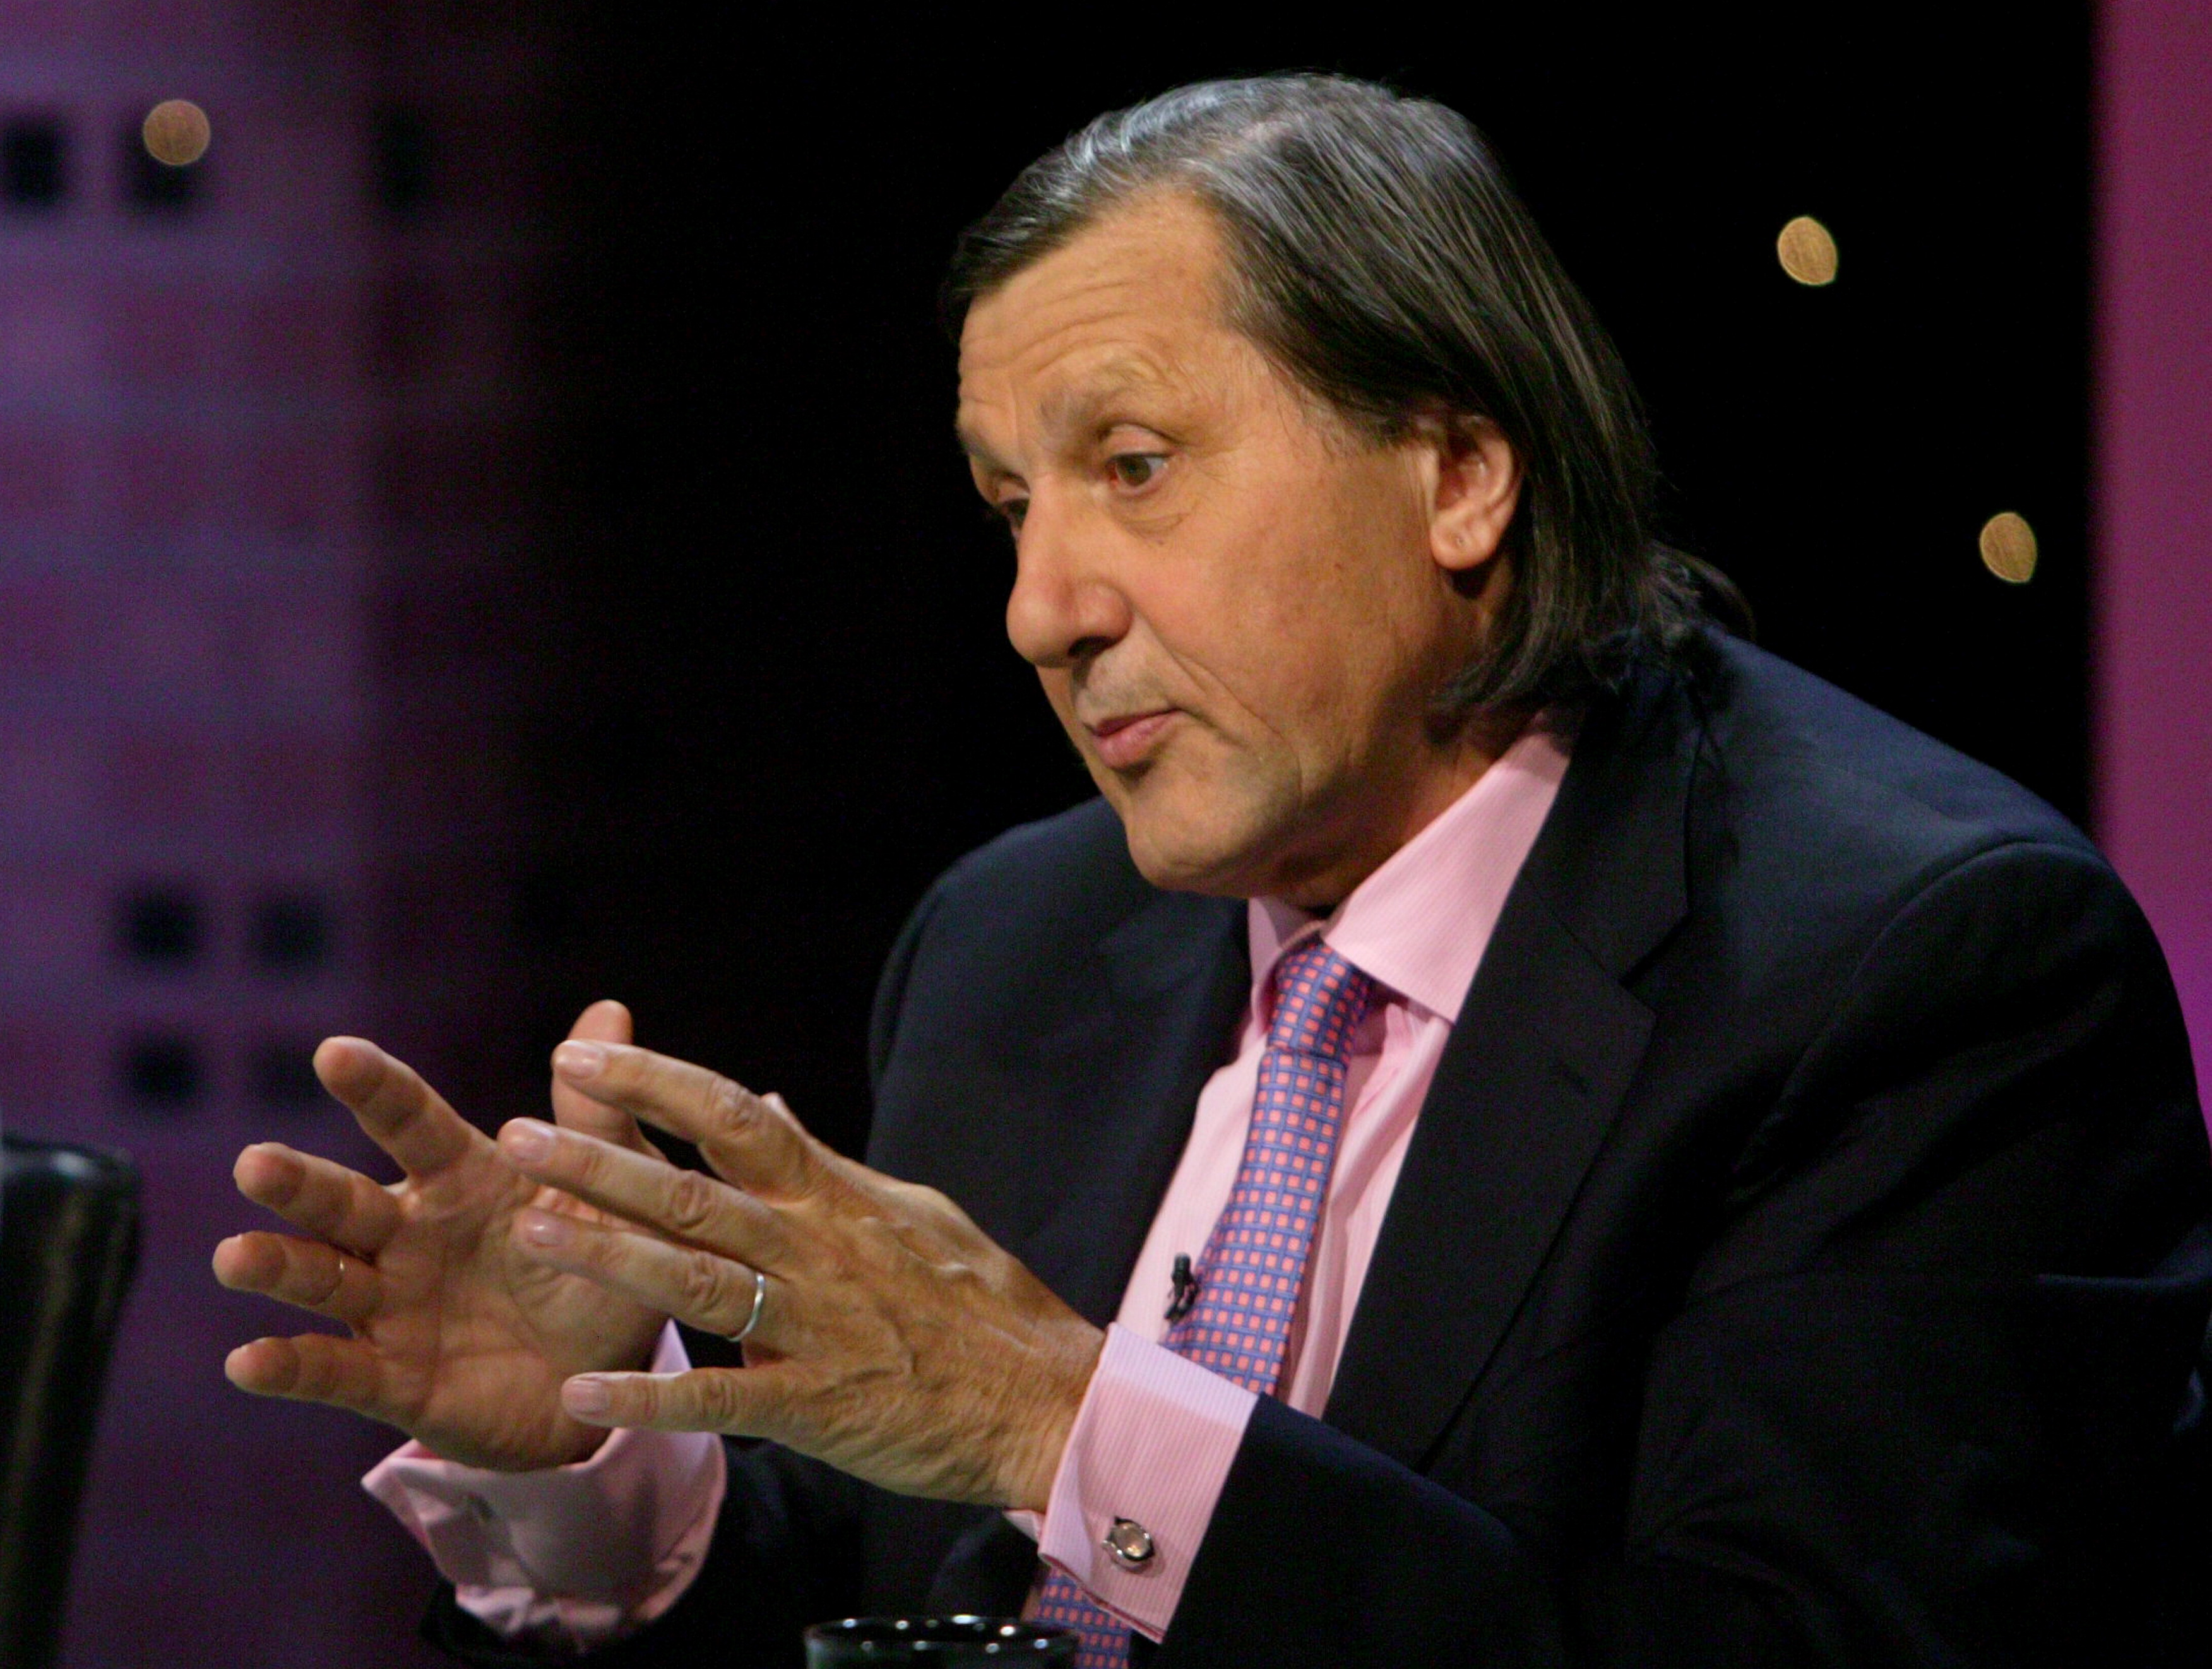 Ilie Nastase Federer can play tennis until he is 60